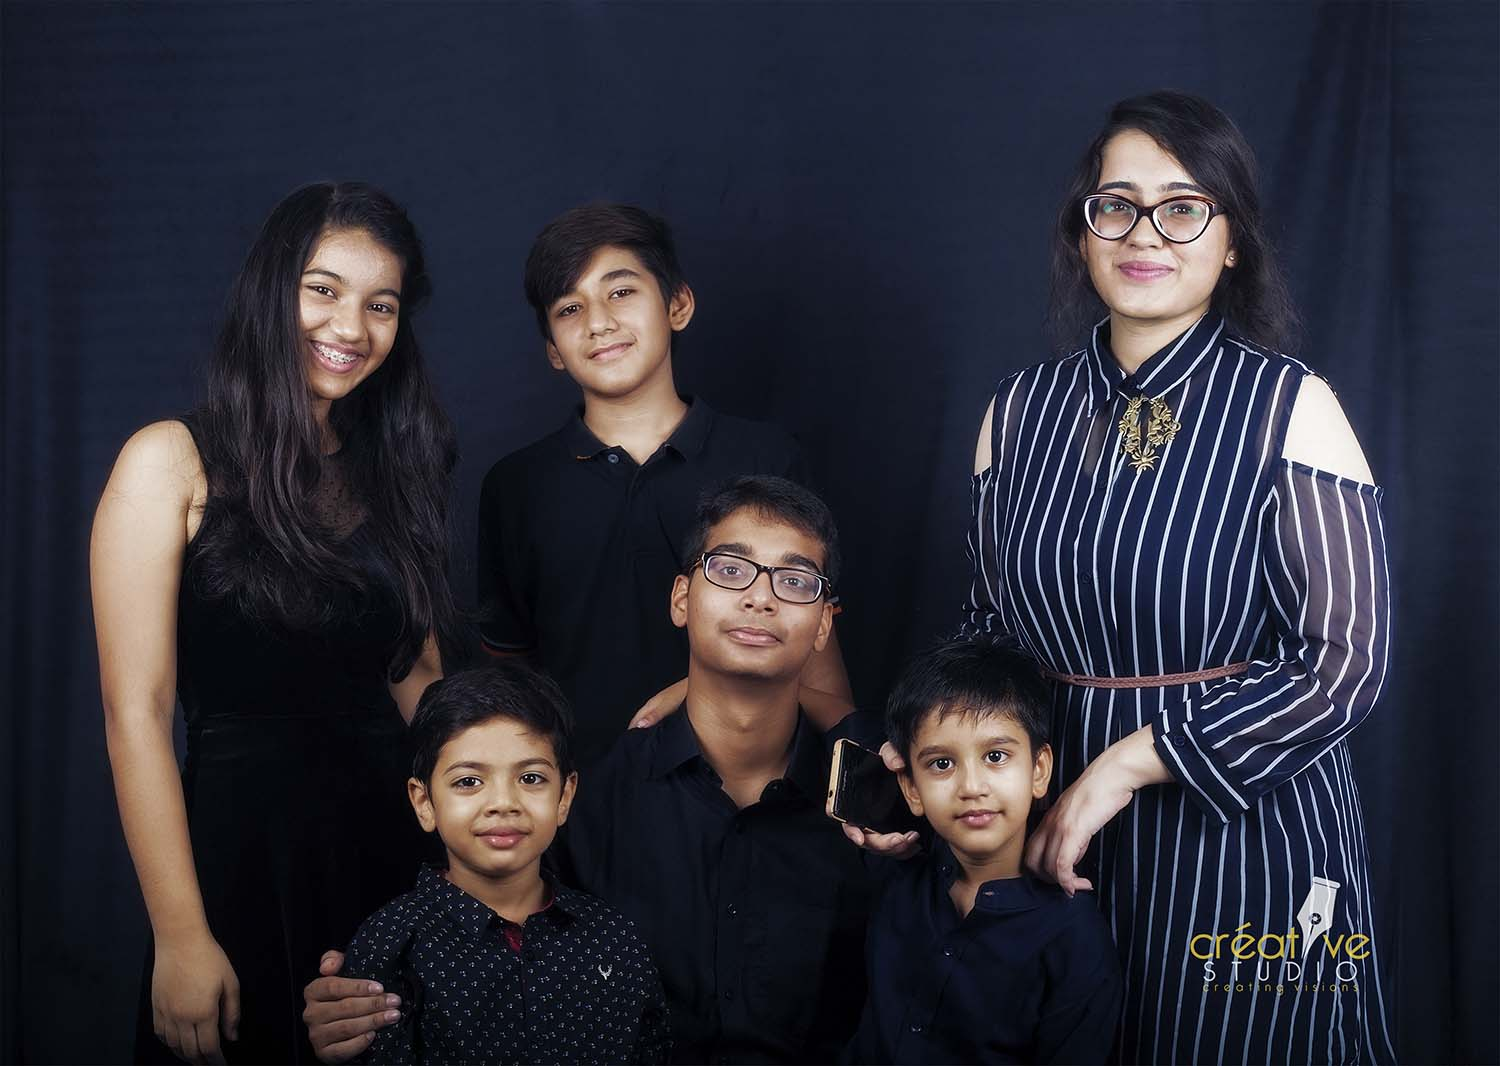 Family n Frends 1 - Family & Friend Photography Shoot